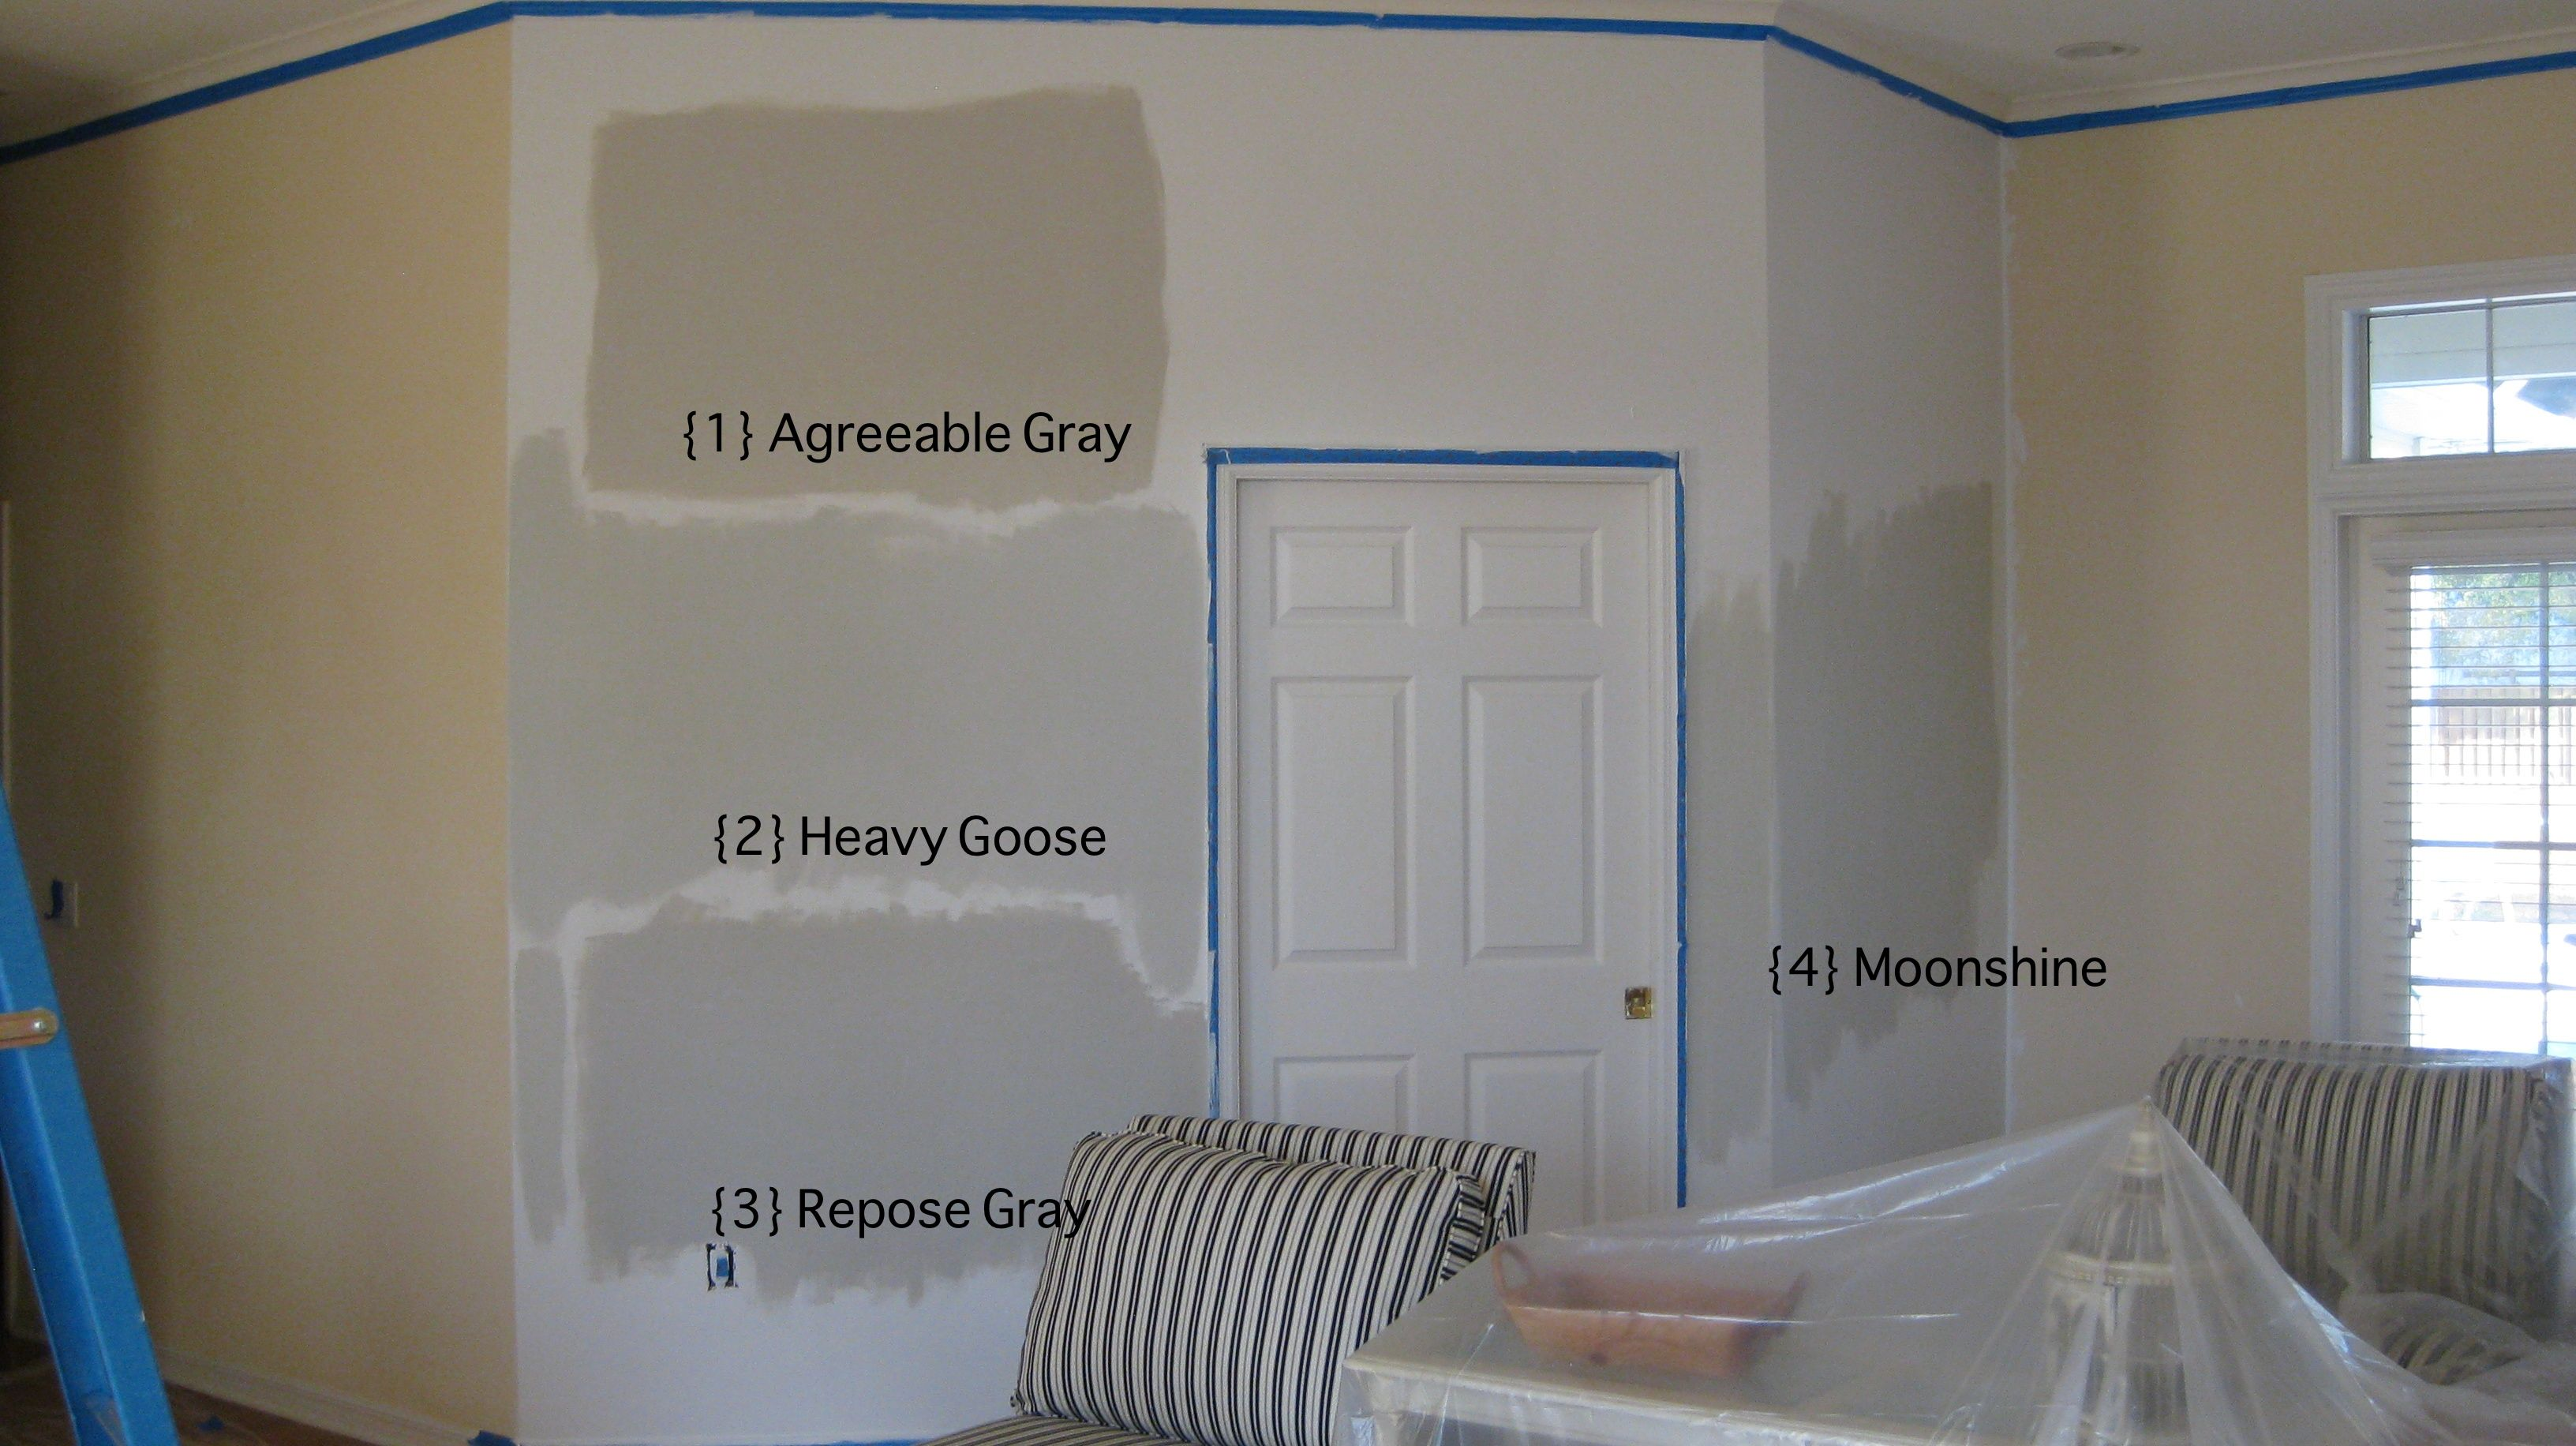 Image Detail For Agreeable Gray Sherwin Williams